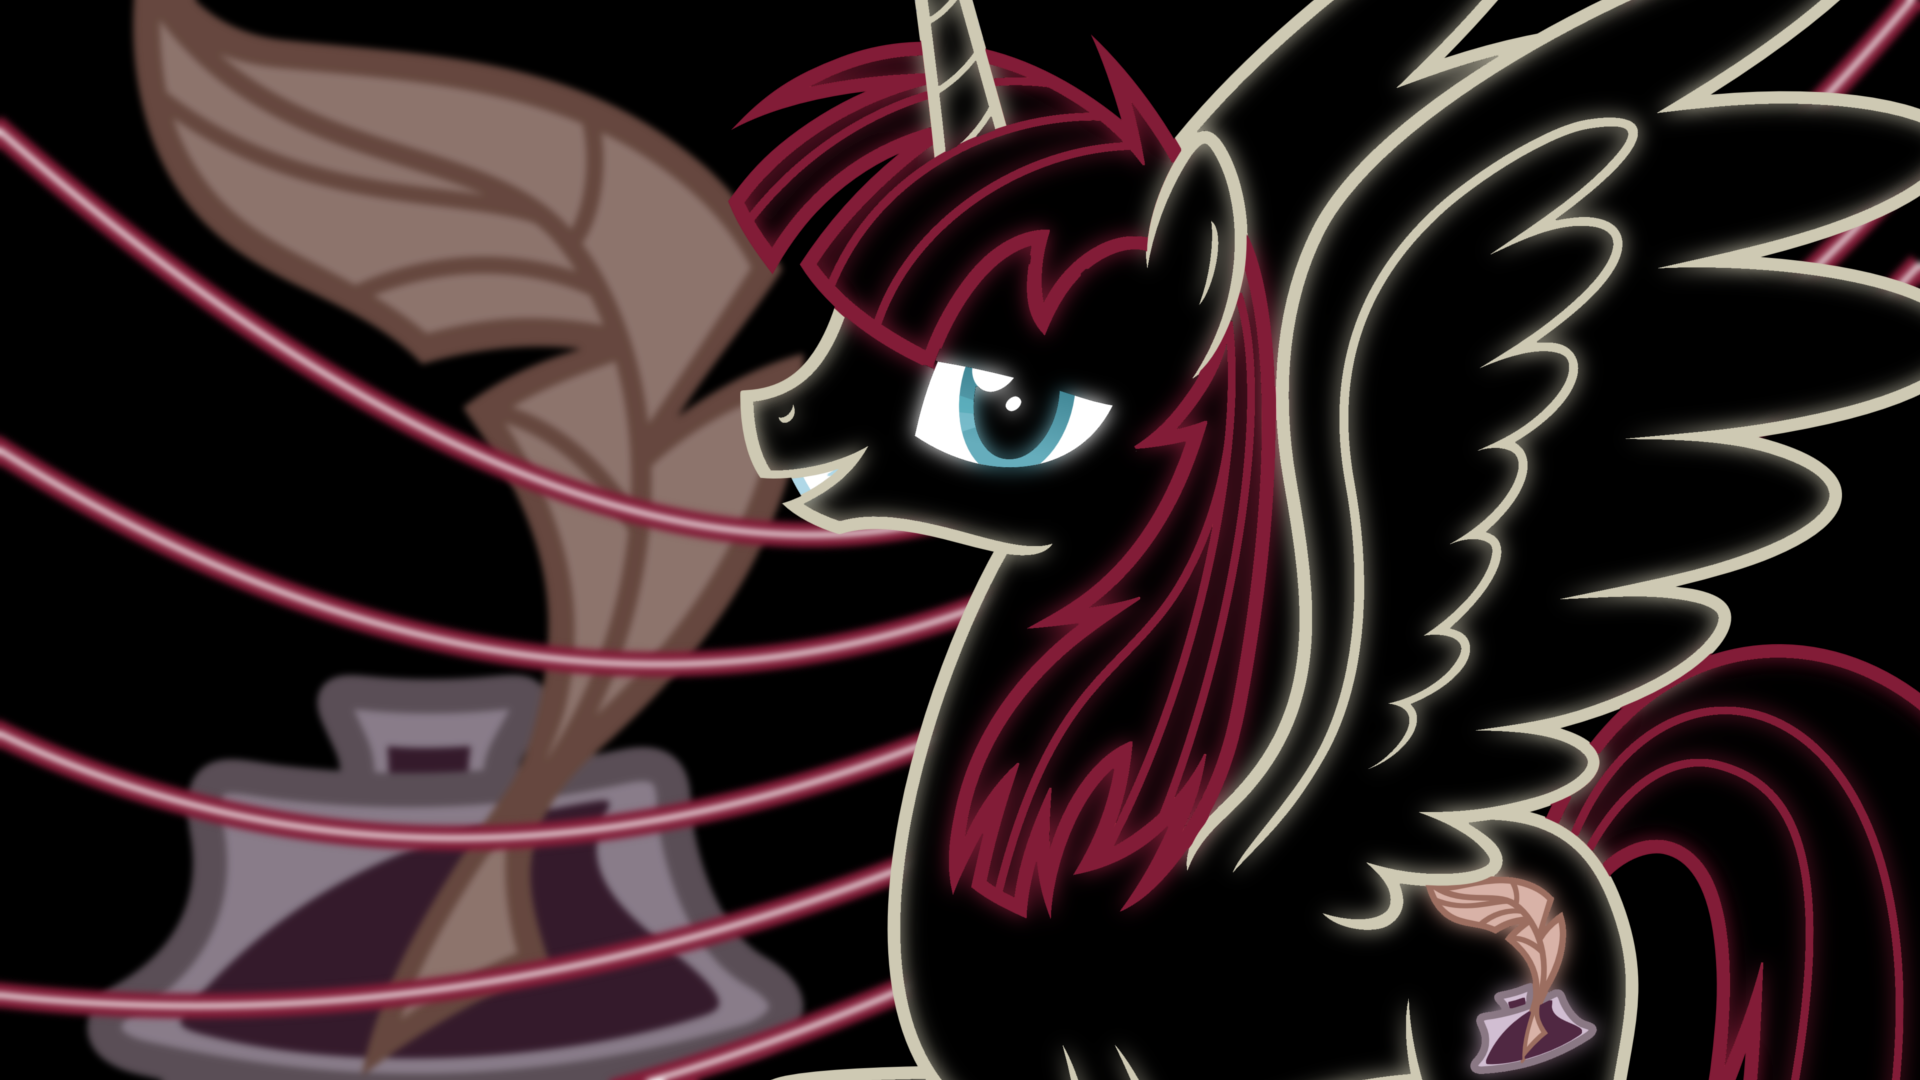 Lauren Faust Neon Wallpaper by RDbrony16